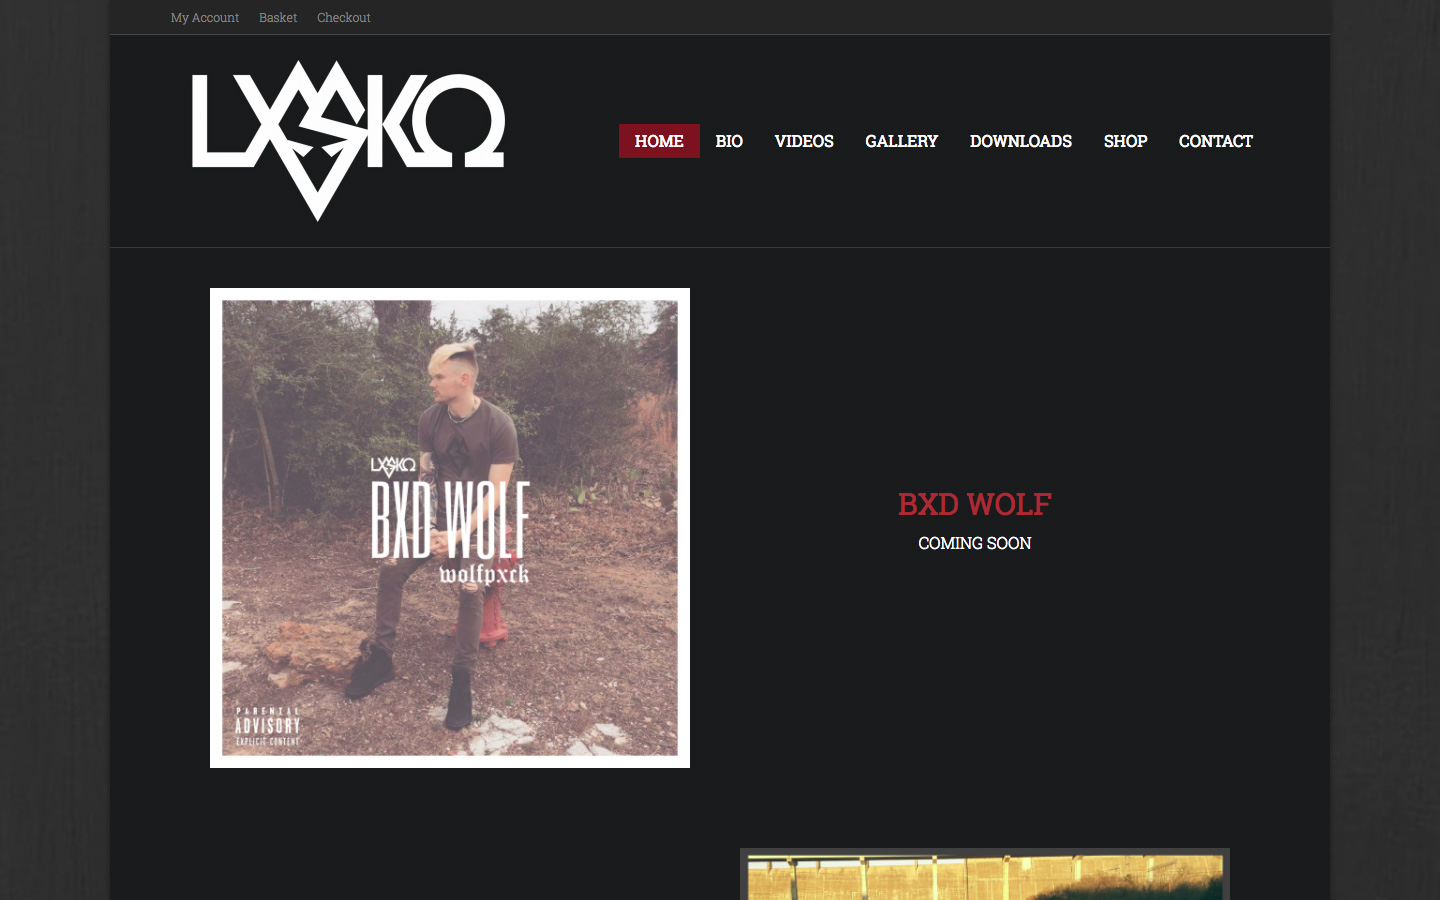 Website Design and hosting for British Musical Artist Lxsko